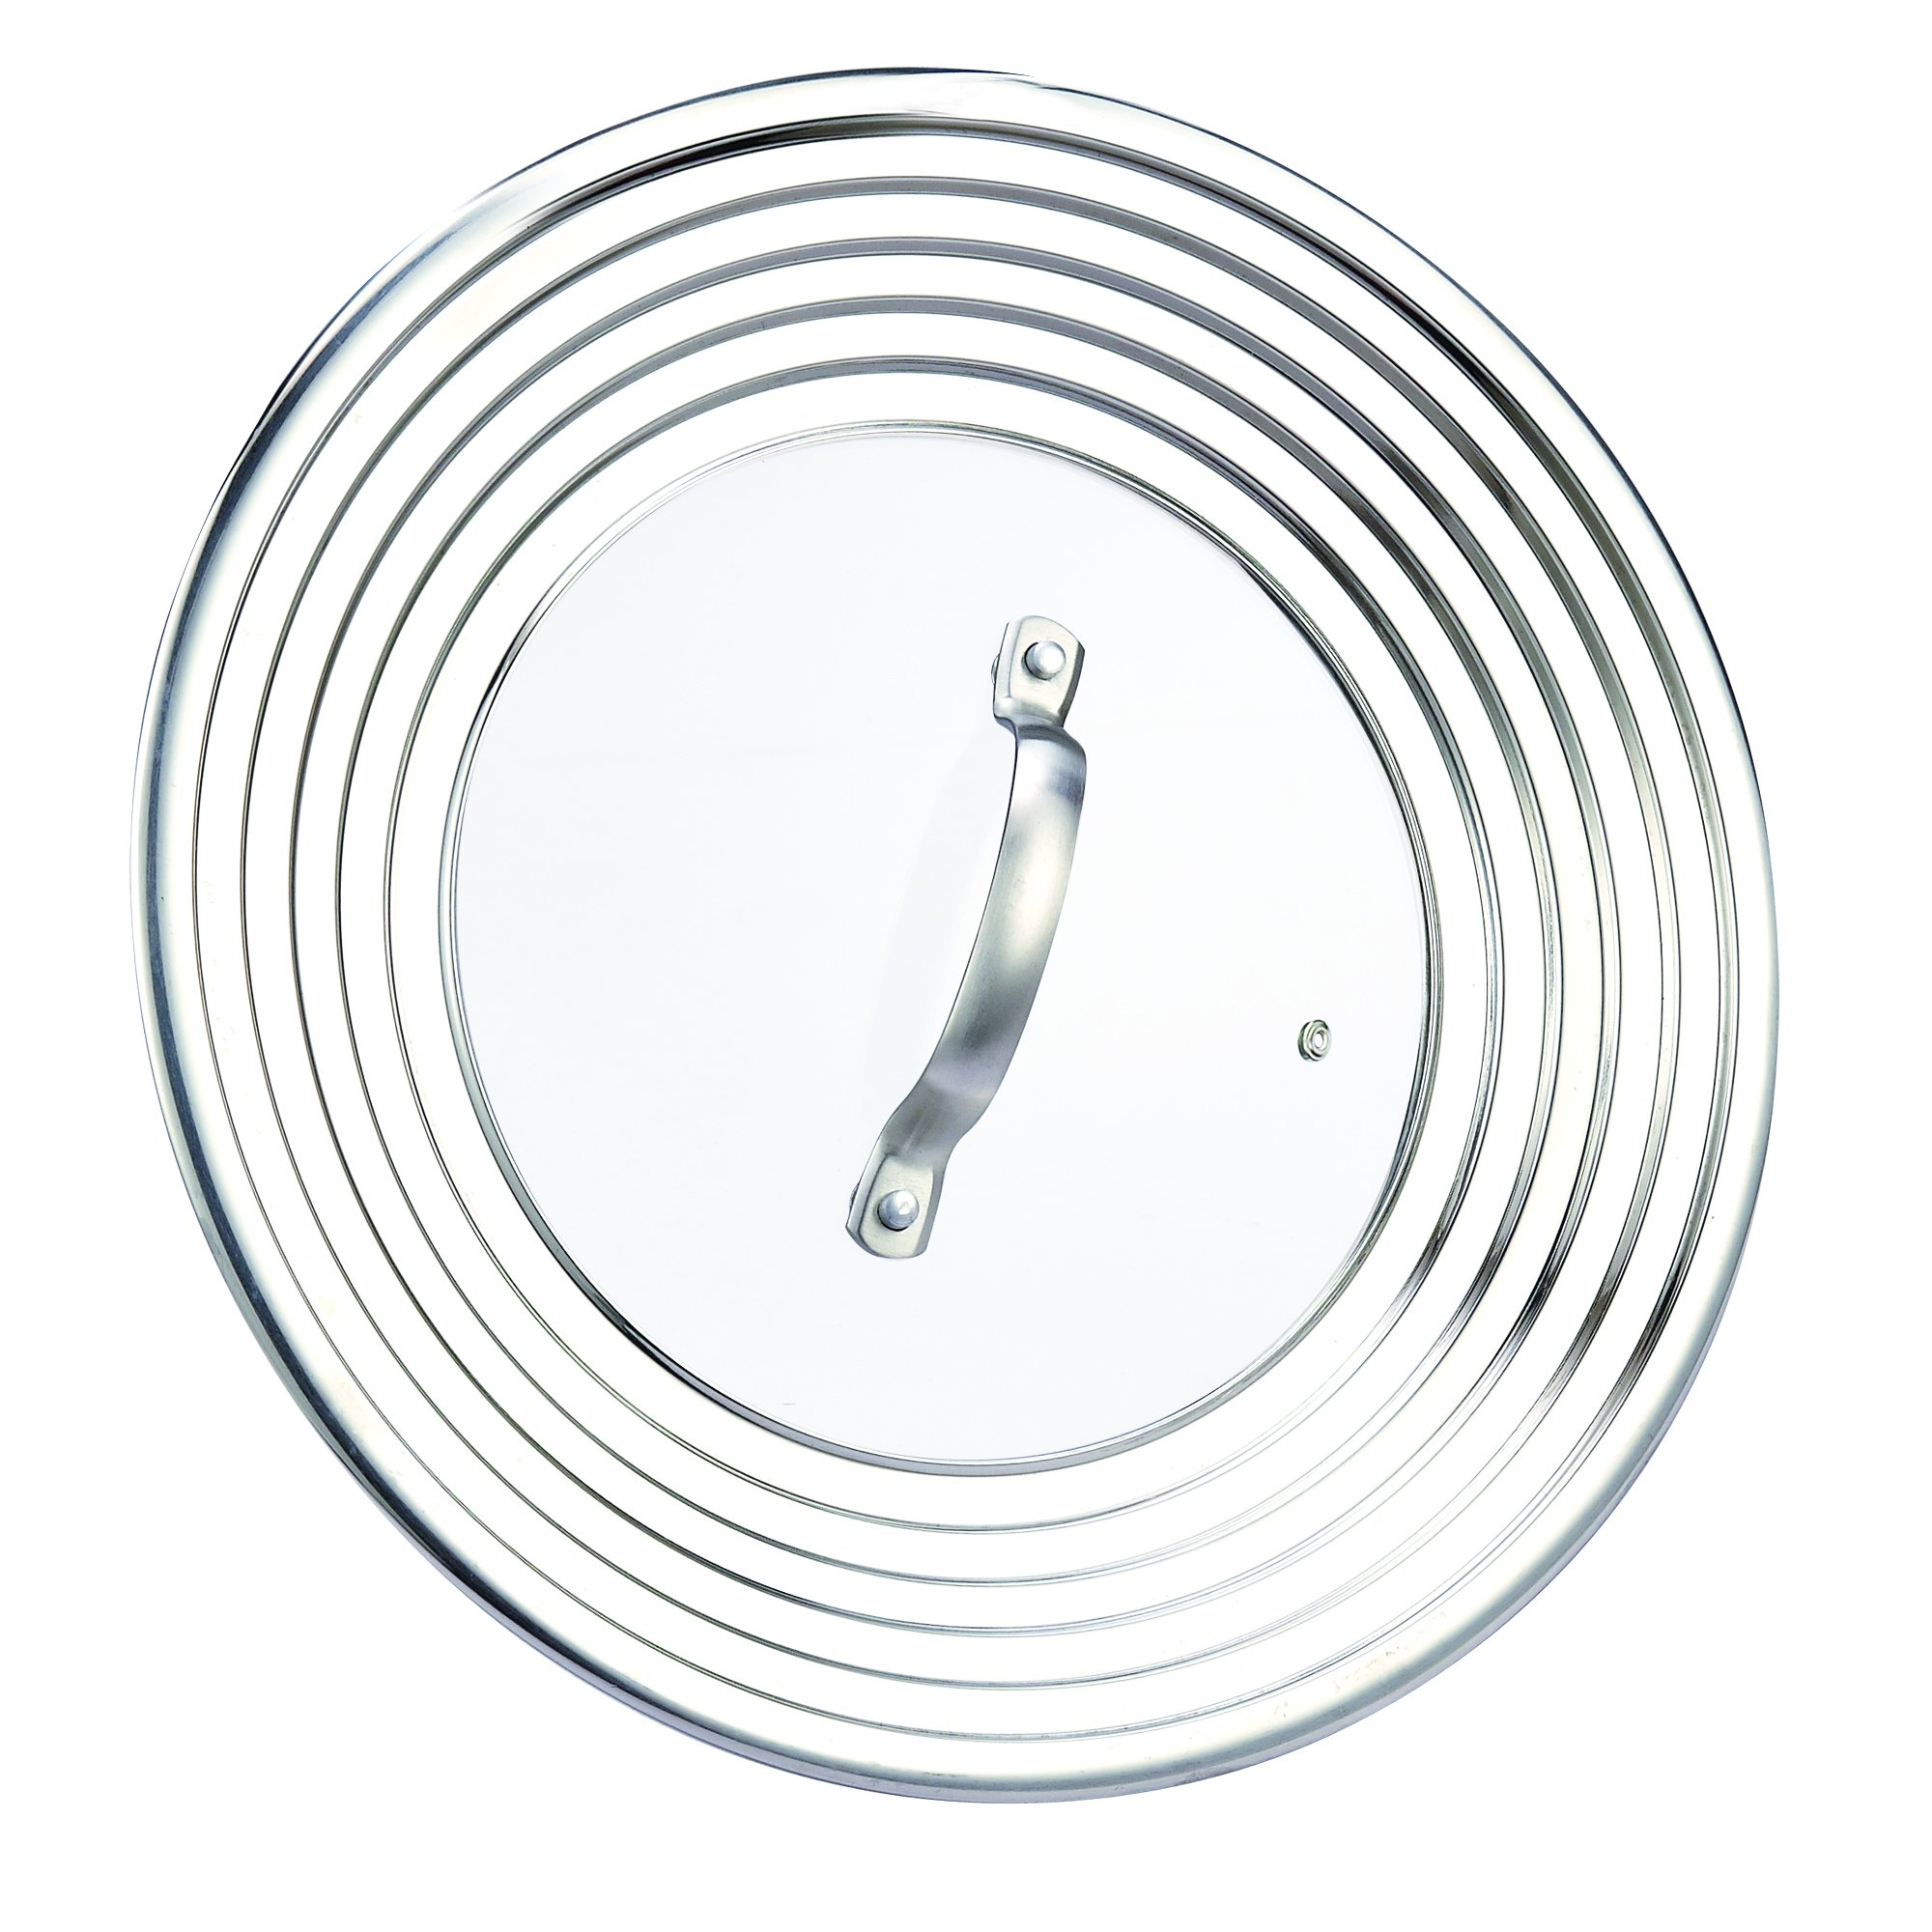 Cook N Home Stainless Steel Universal Lid, Fits 8 to 12-Inch, Glass Center